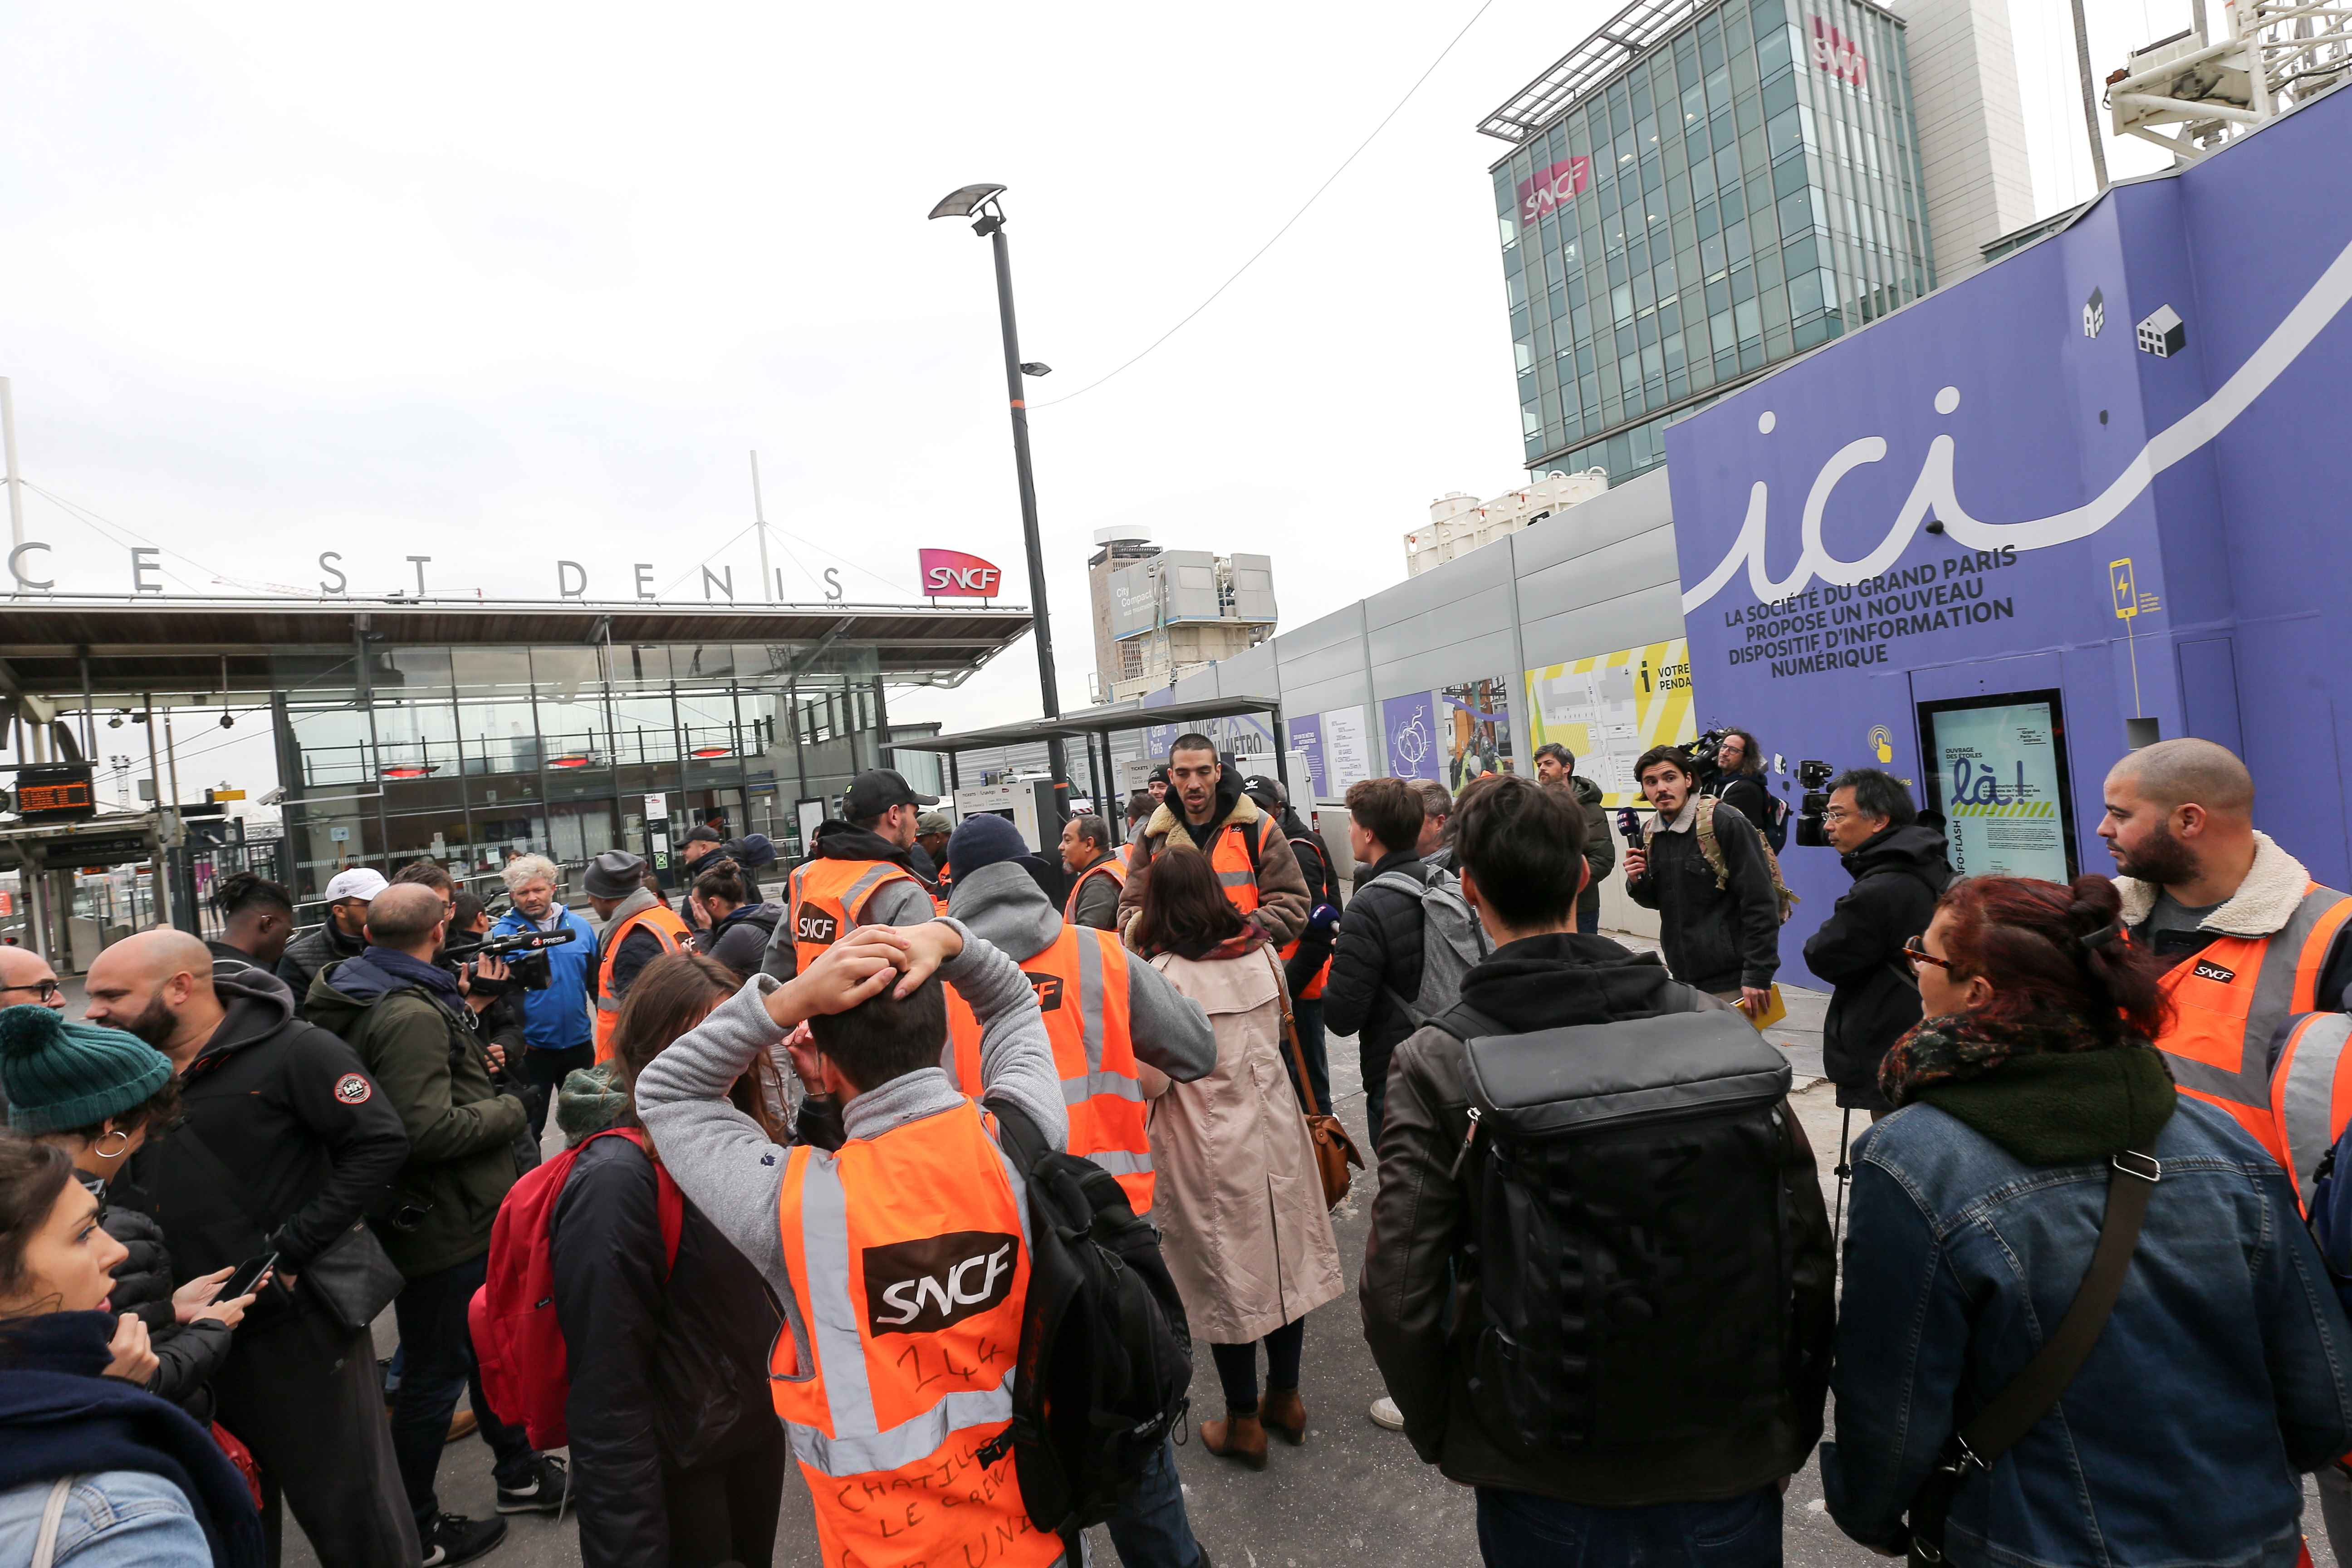 Railway workers wearing jackets of France's national state-owned railway company (SNCF) and workers of Chatillon TGV Technicentre, protest in front of the headquarters of the SNCF company, in Saint-Denis, near Paris, on October 29, 2019. Originally a local